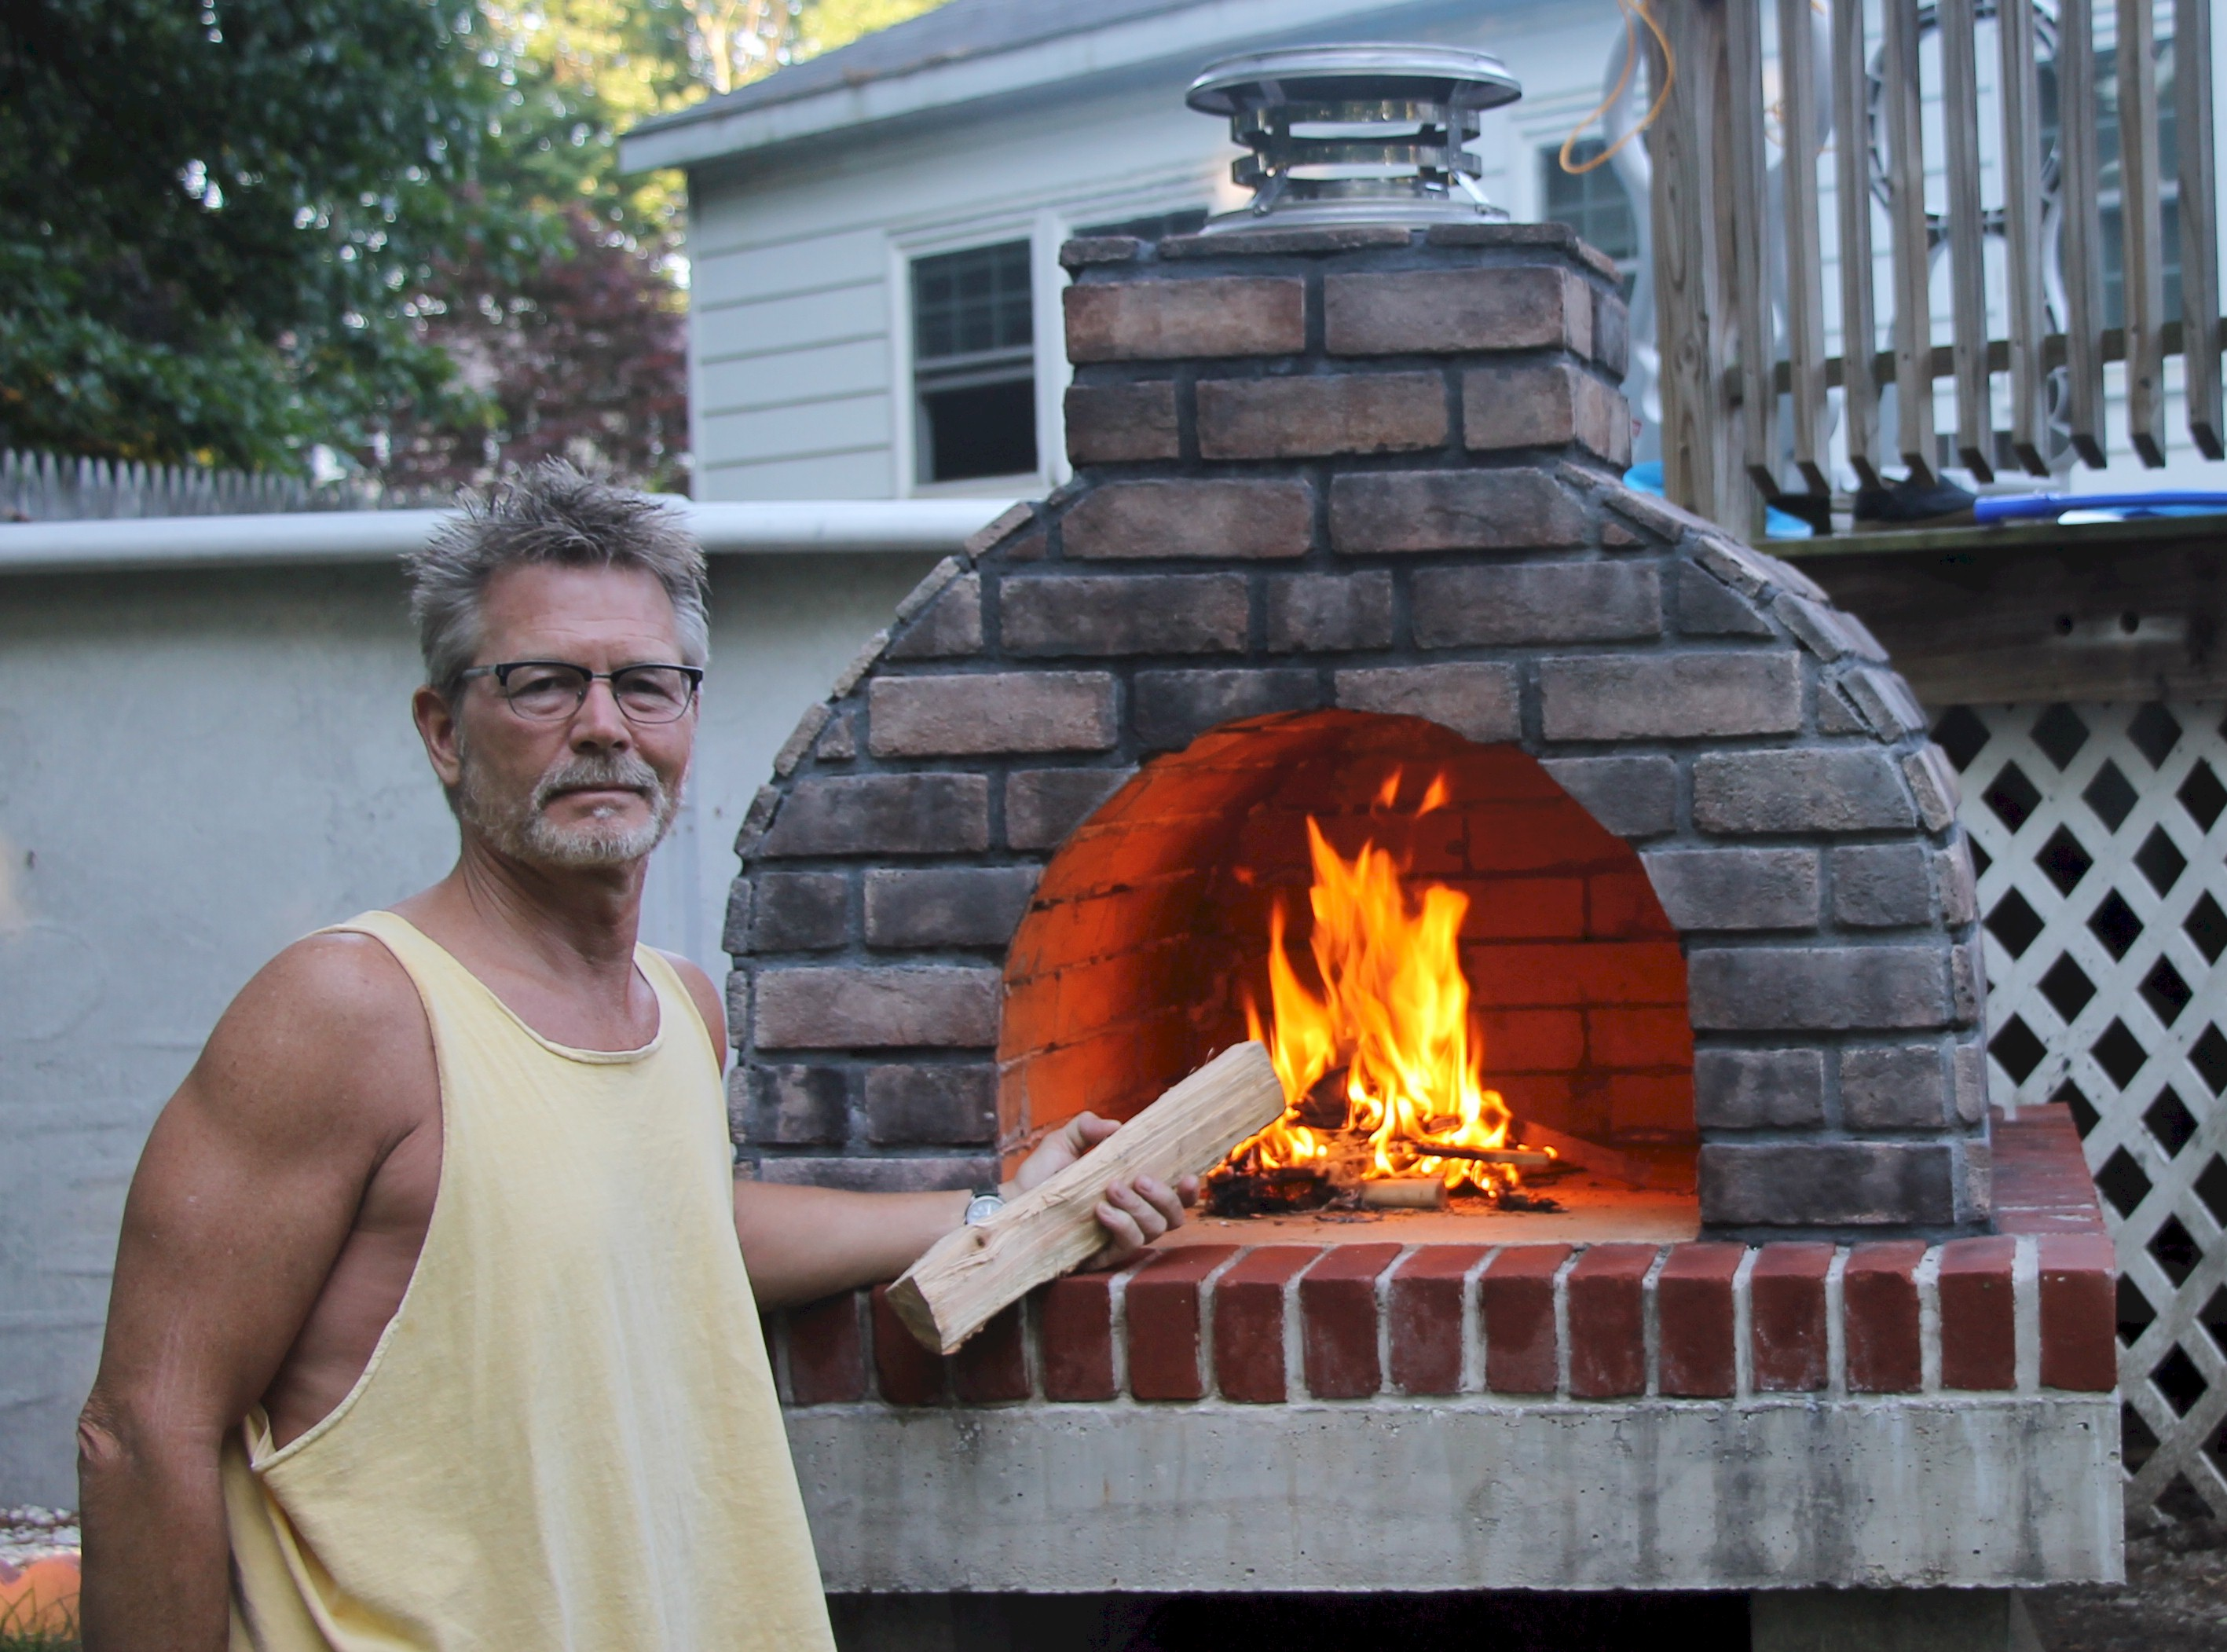 DIY Wood-Fired Outdoor Brick Pizza Ovens Are Not Only Easy ...